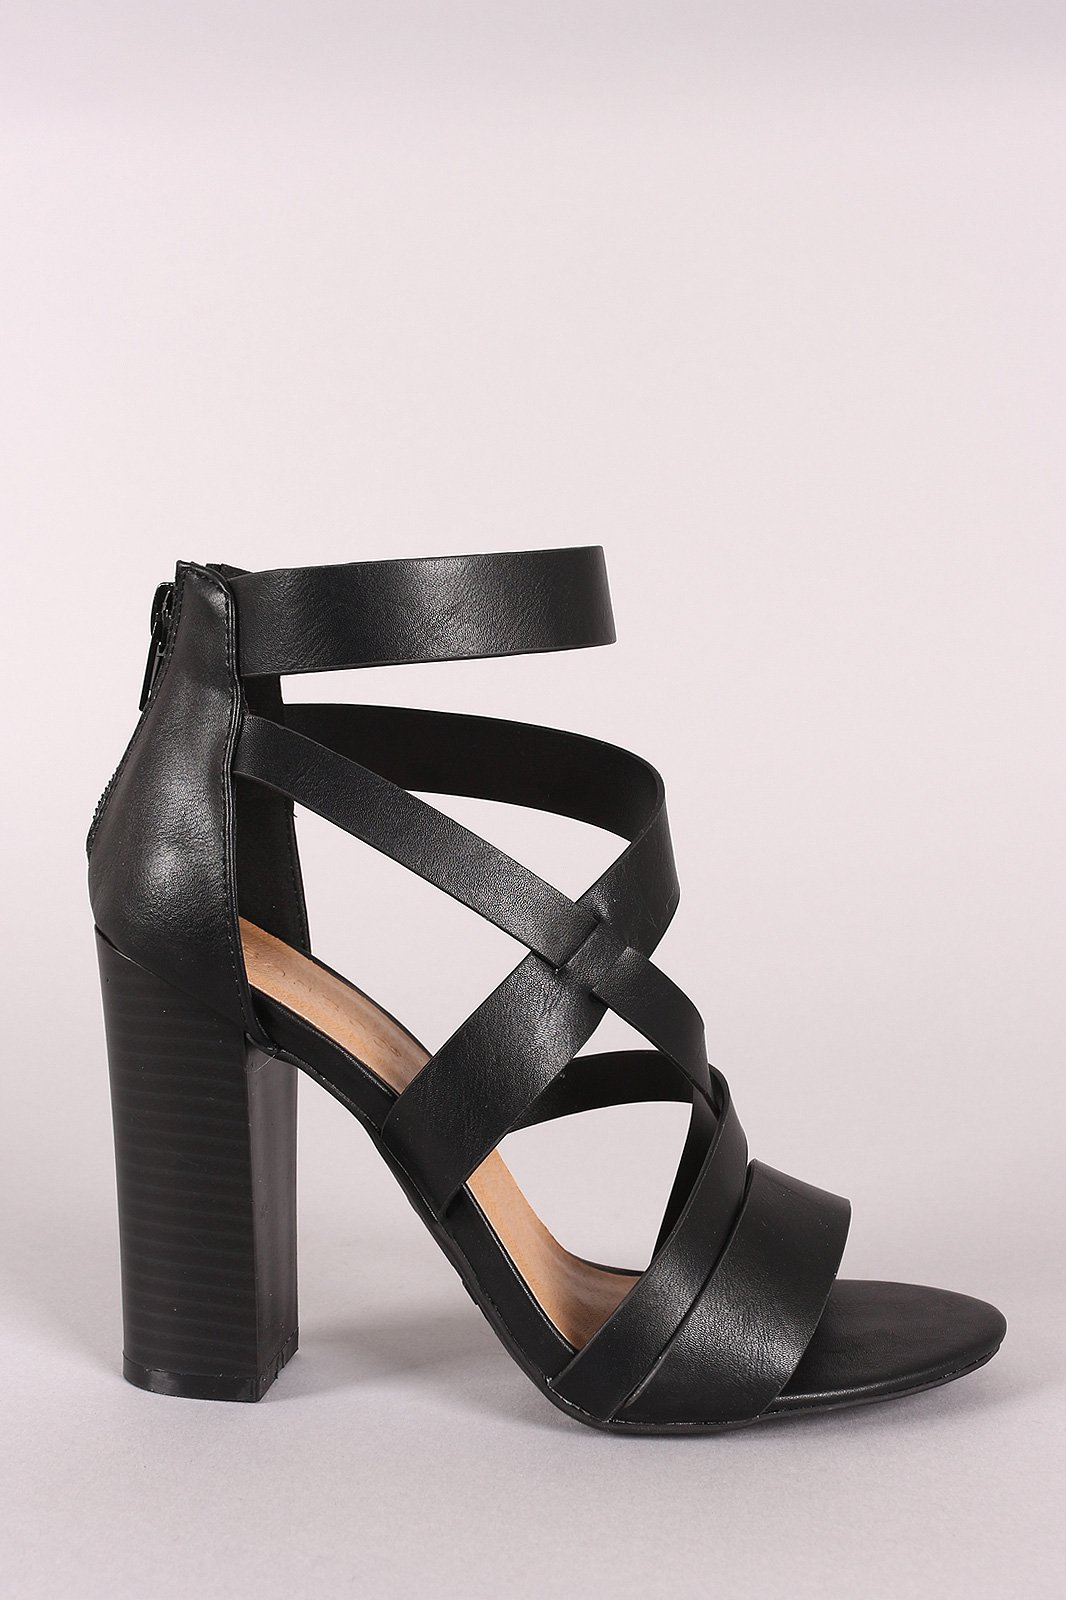 96c14206316 These open toe sandals features strappy vegan leather vamp with diagonal  construction